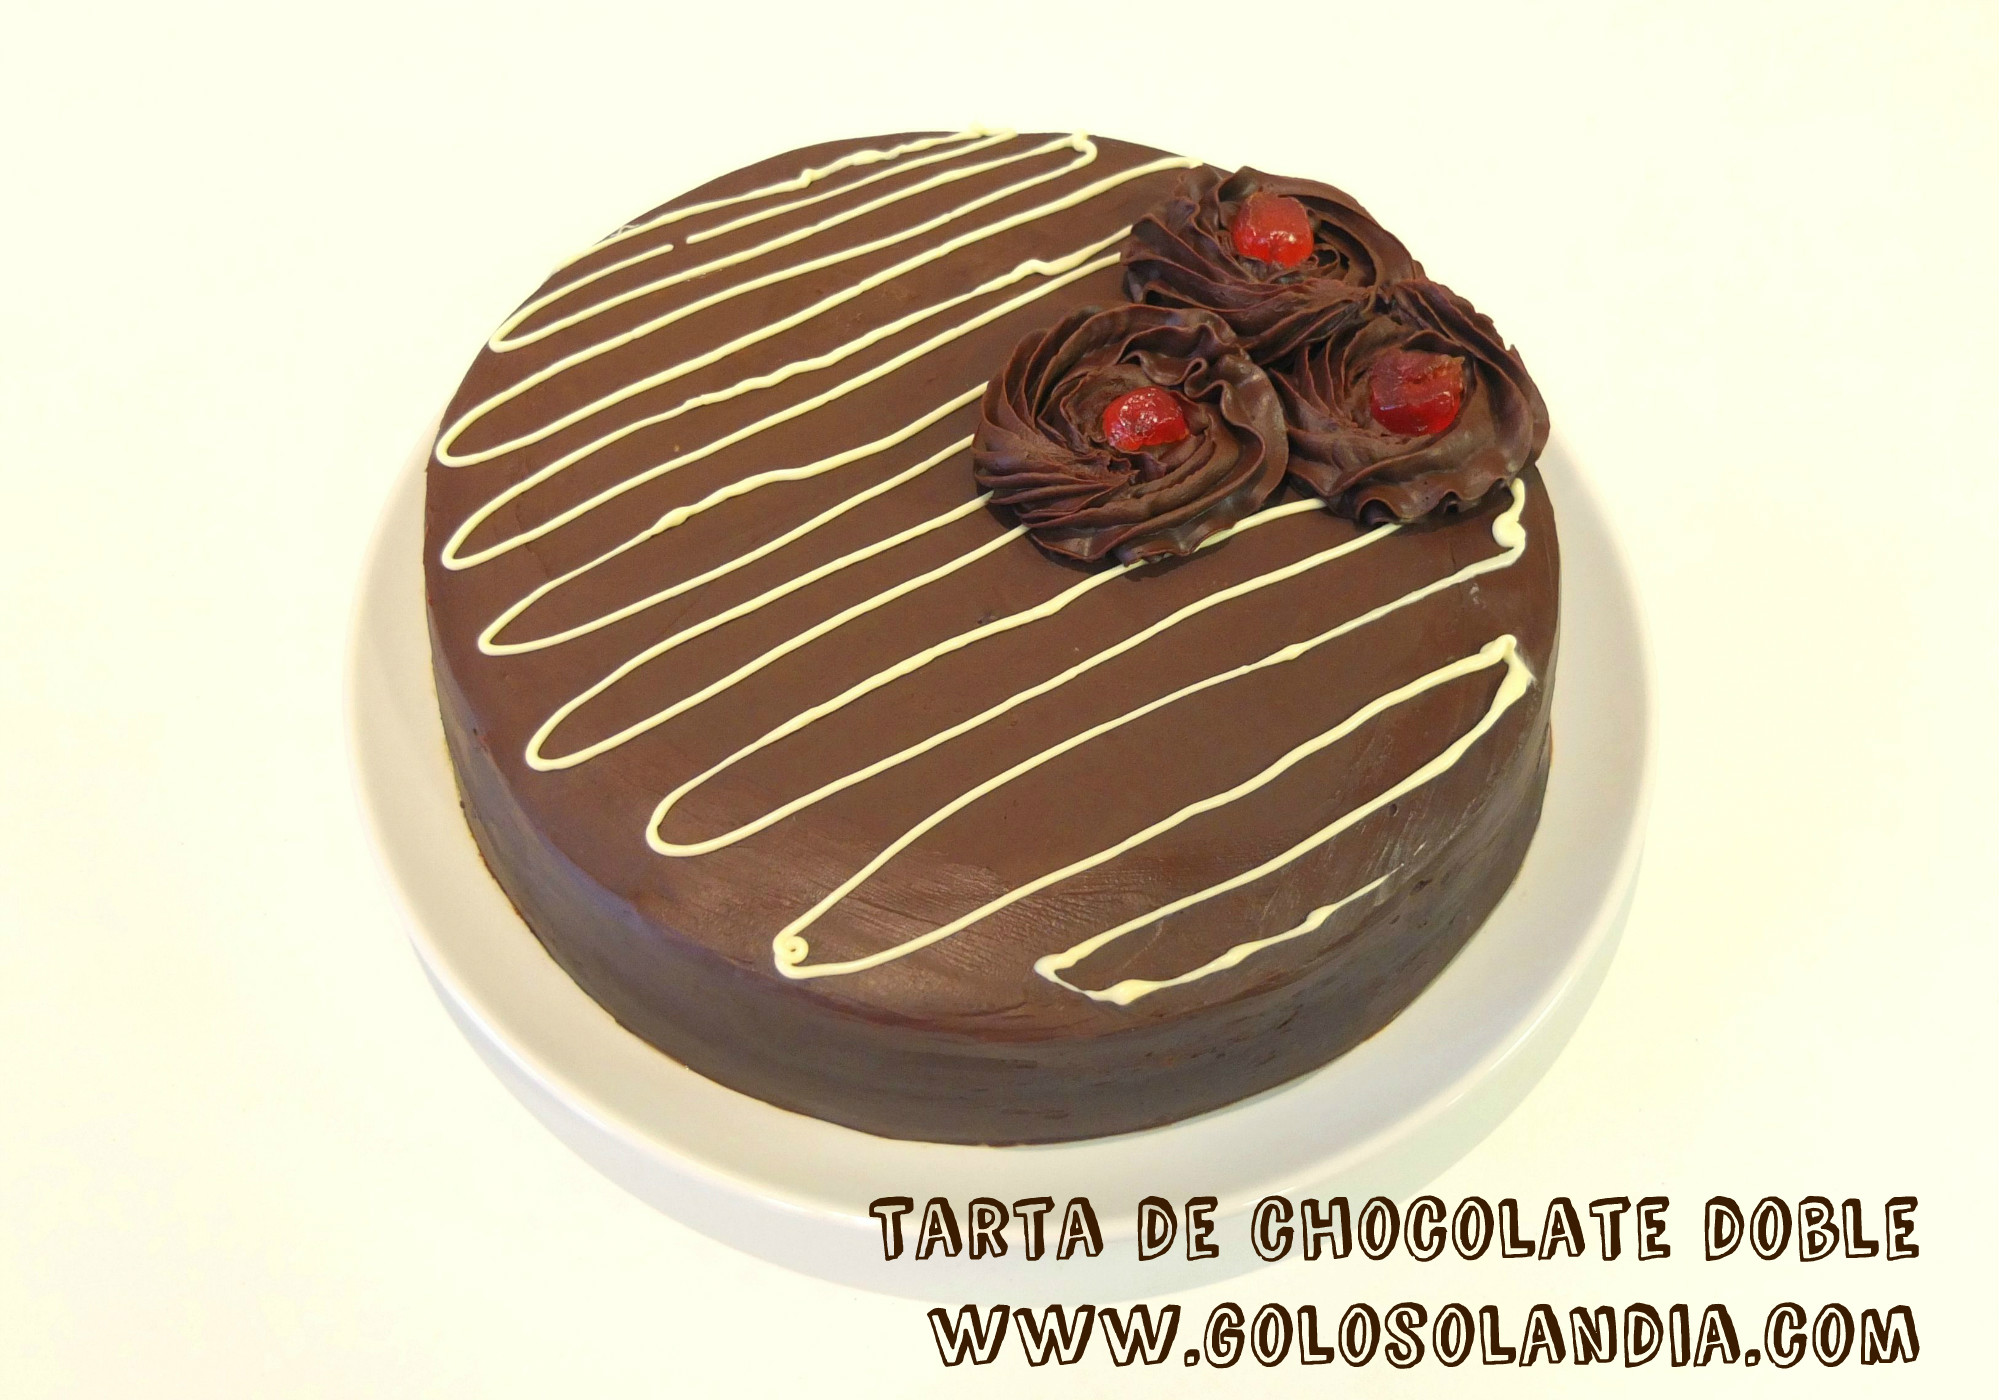 Tarta de chocolate doble